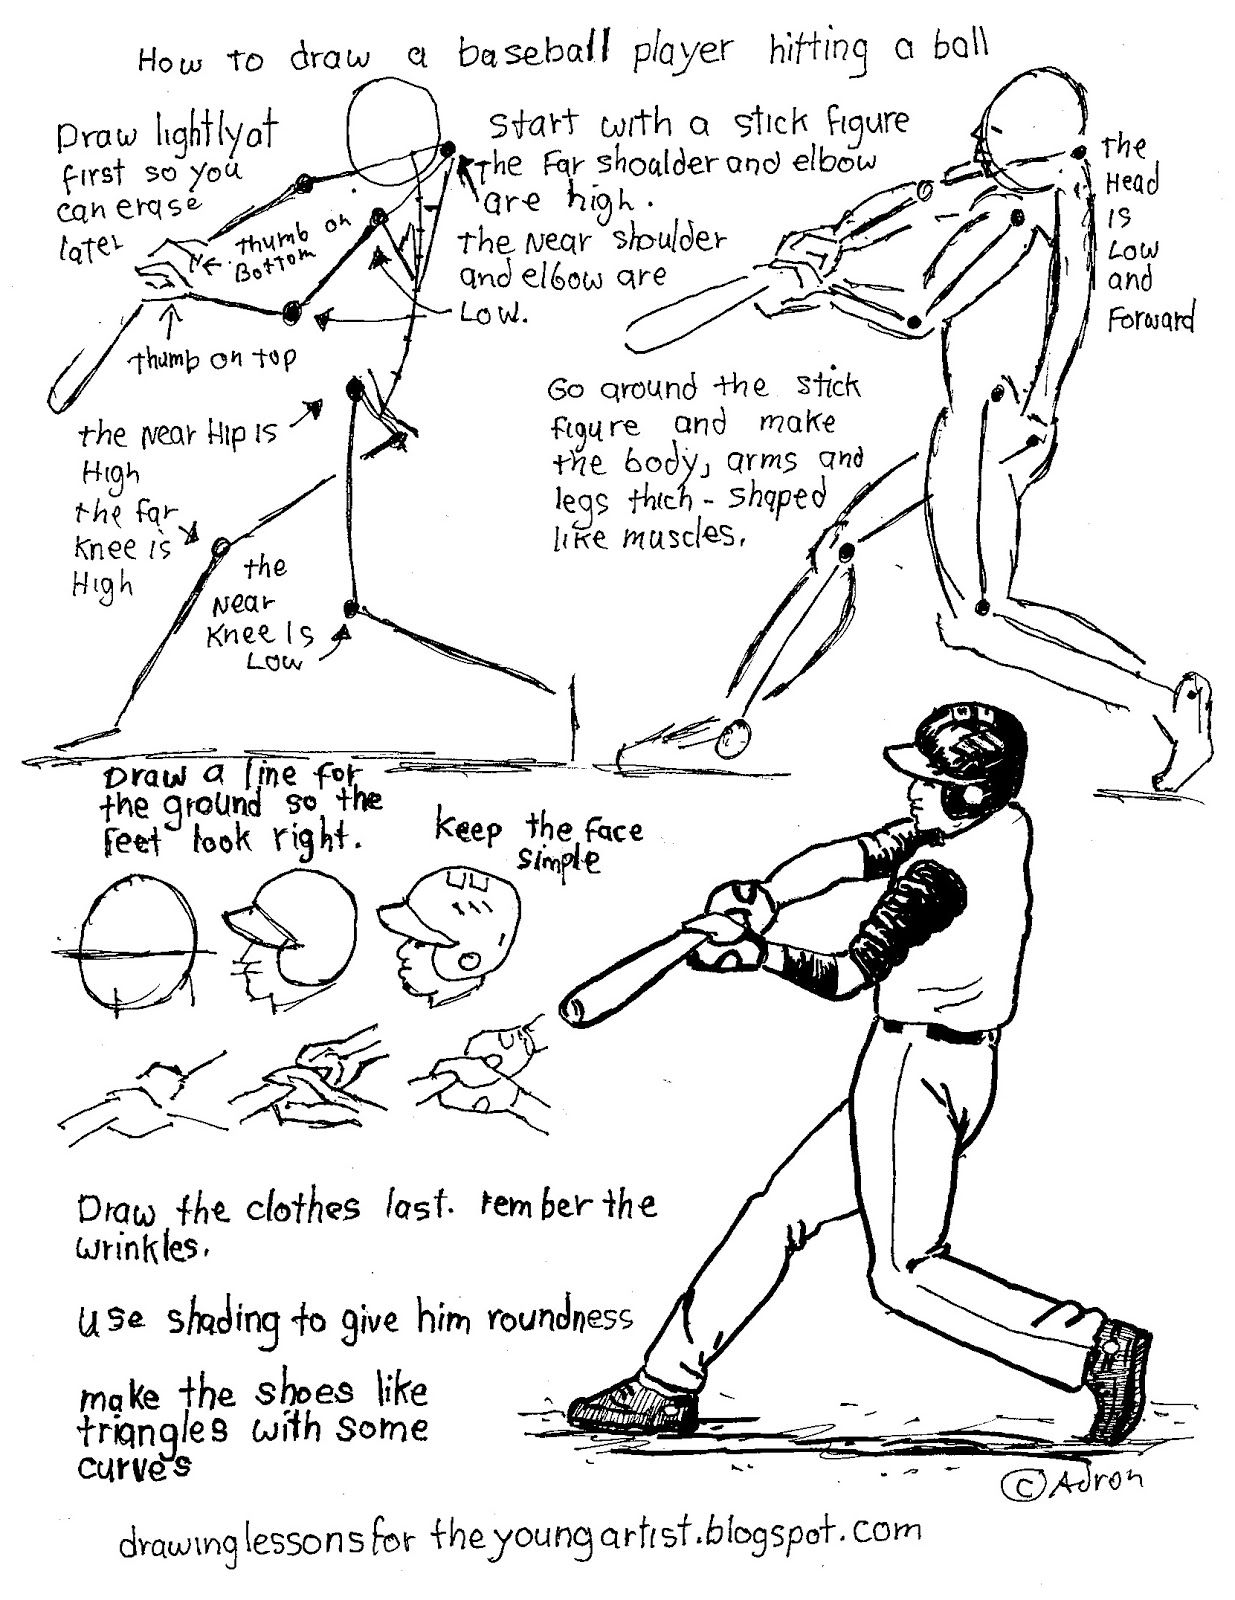 worksheet Drawing Worksheets pin by adron dozat on how to draw worksheets i designed pinterest for the young artist a baseball player hitting ball worksheet